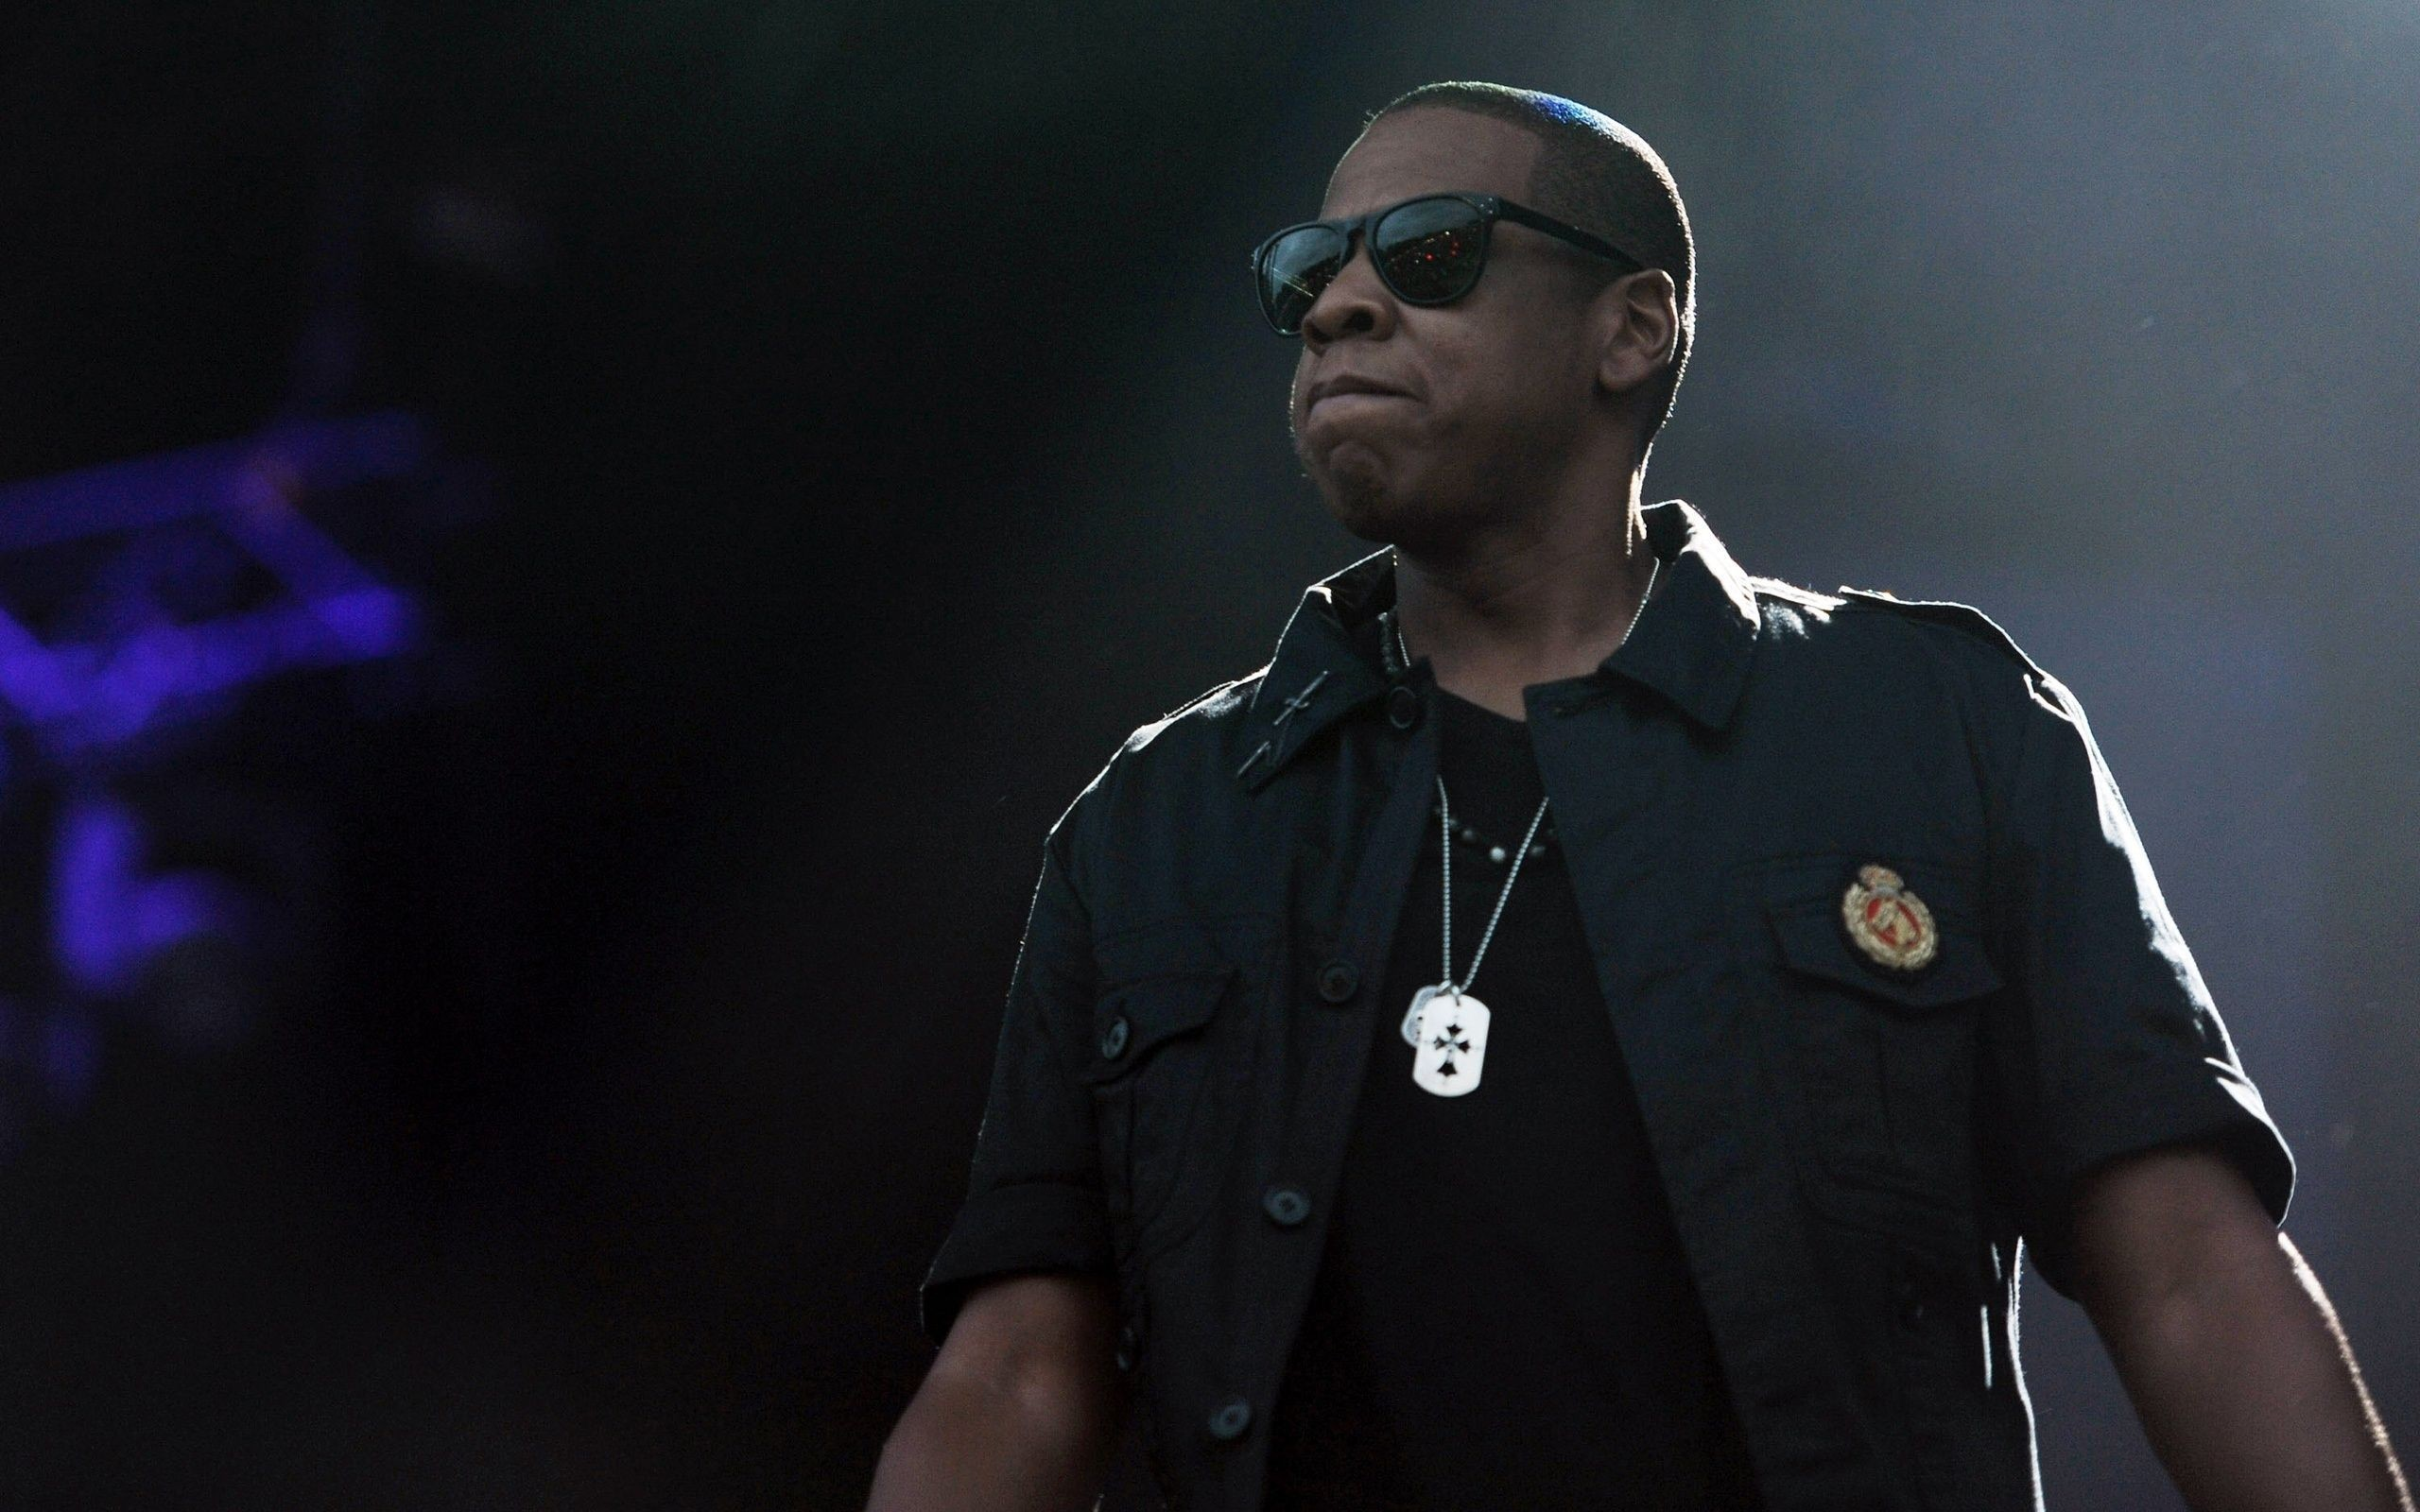 Jay Z Wallpapers Hd 71 Images